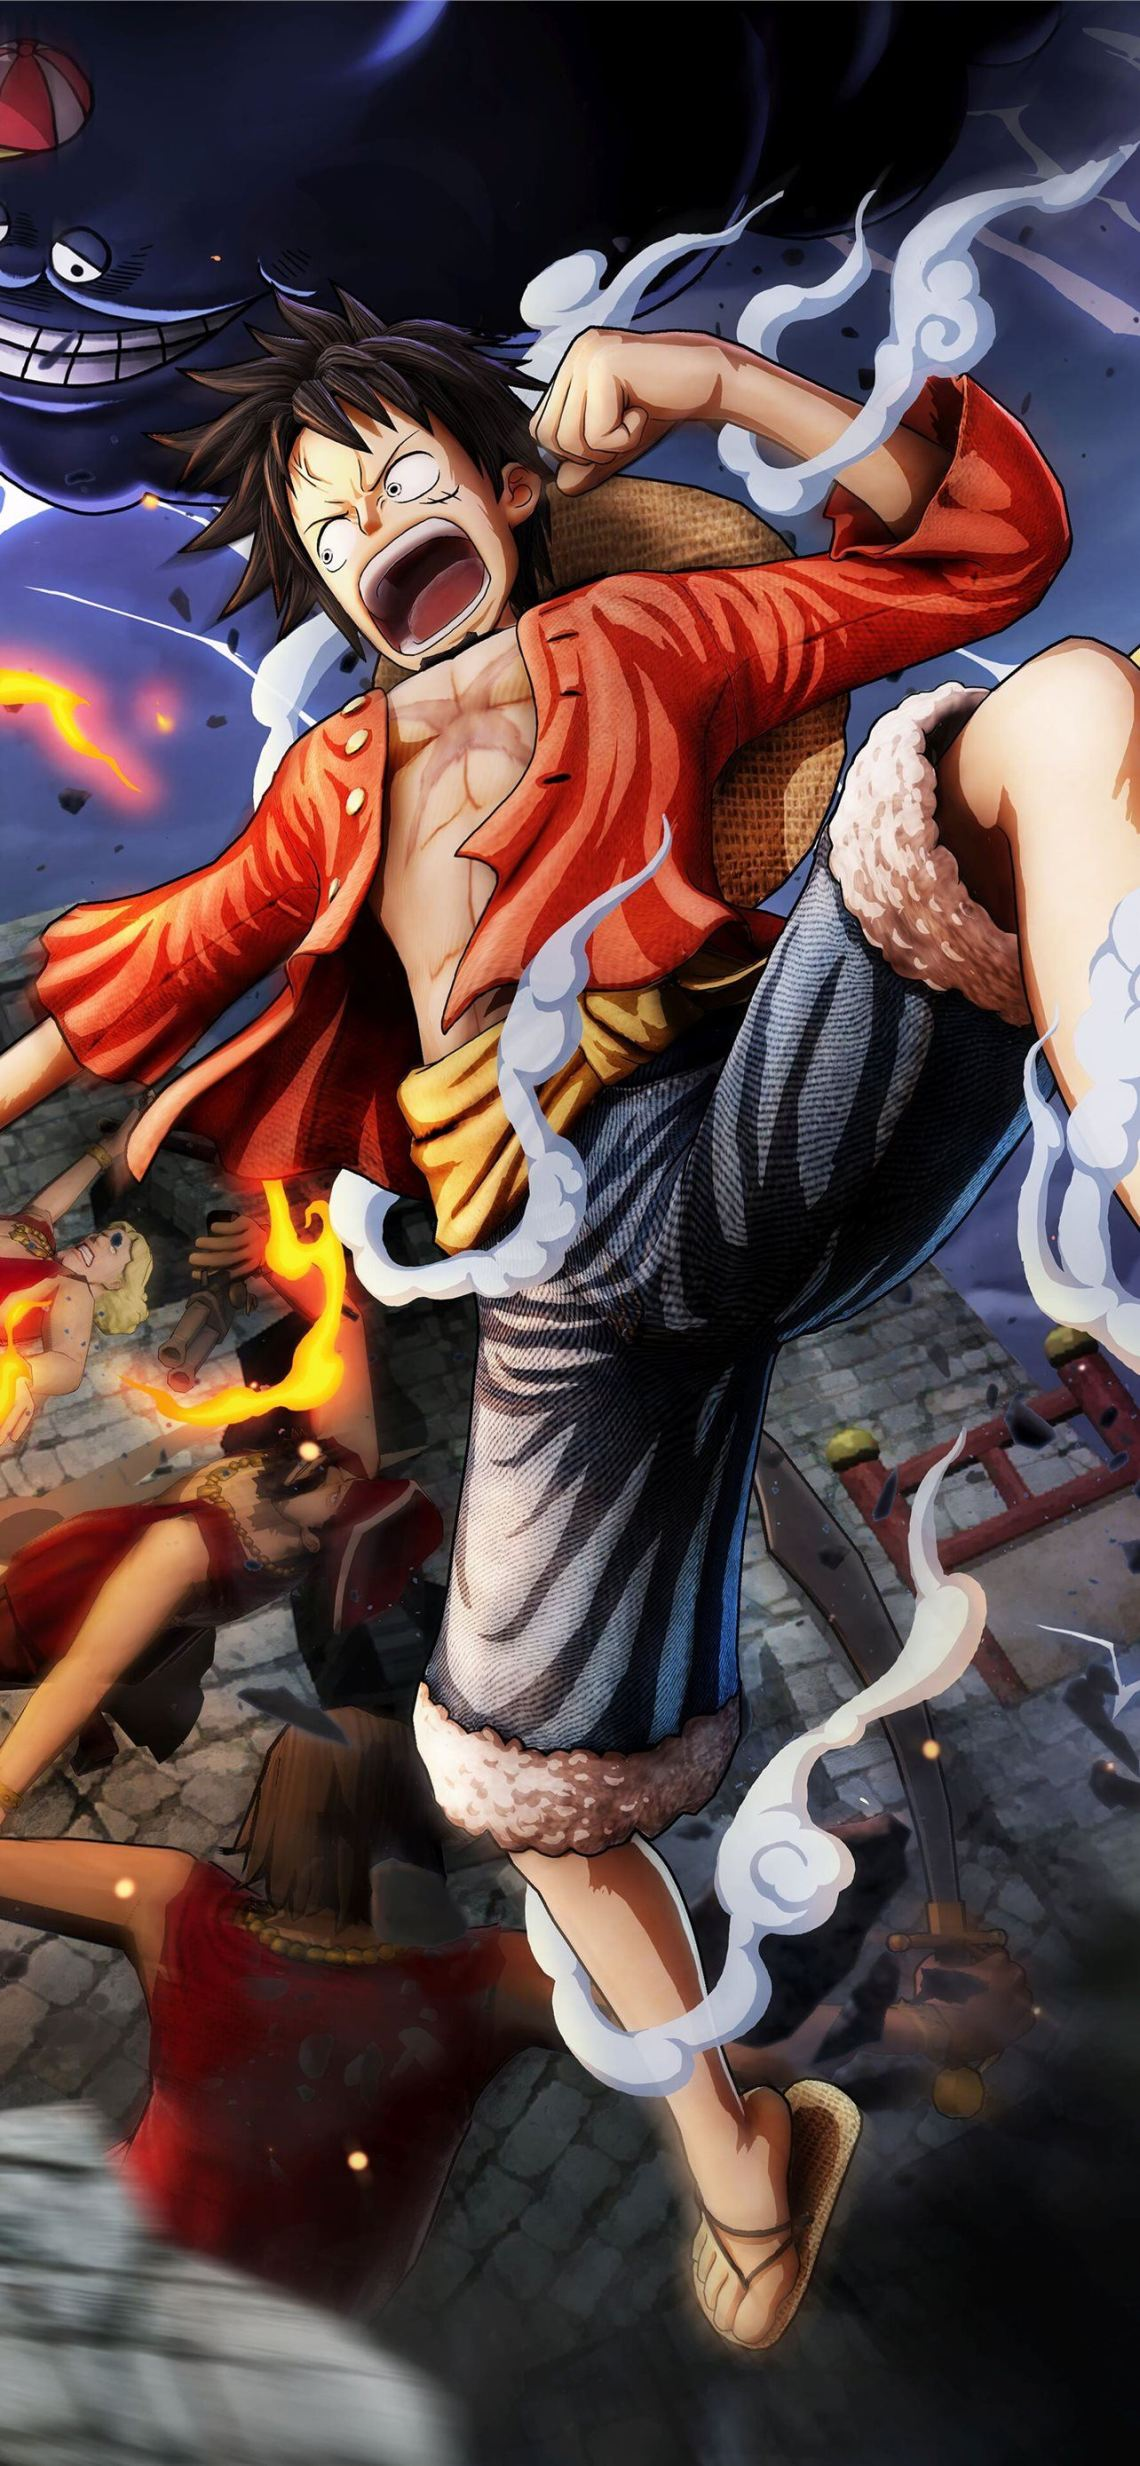 Anime One Piece Kolpaper Awesome Free Hd Iphone Wallpapers Free Download